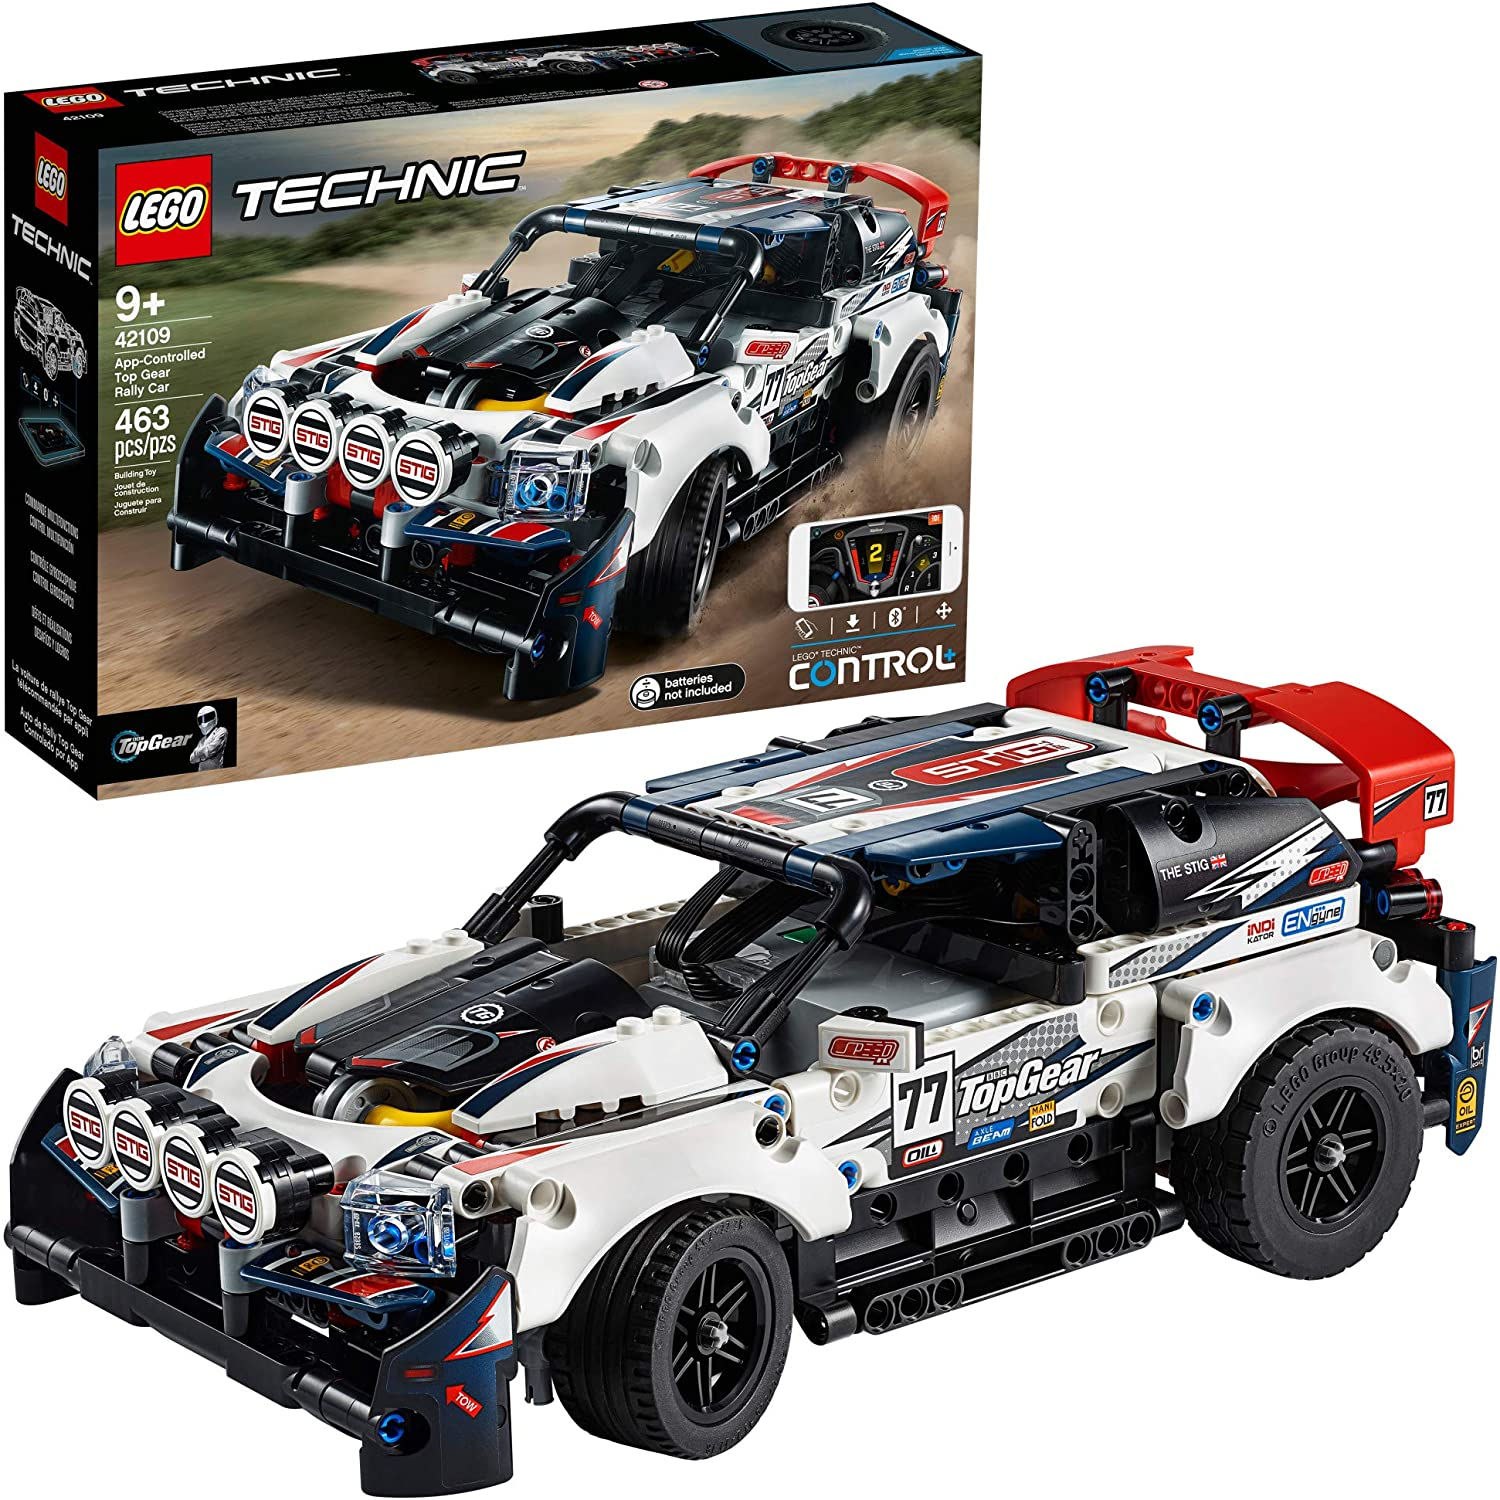 Amazon Com Lego Technic App Controlled Top Gear Rally Car 42109 Racing Toy Building Kit New 2020 463 Pieces Toys Games